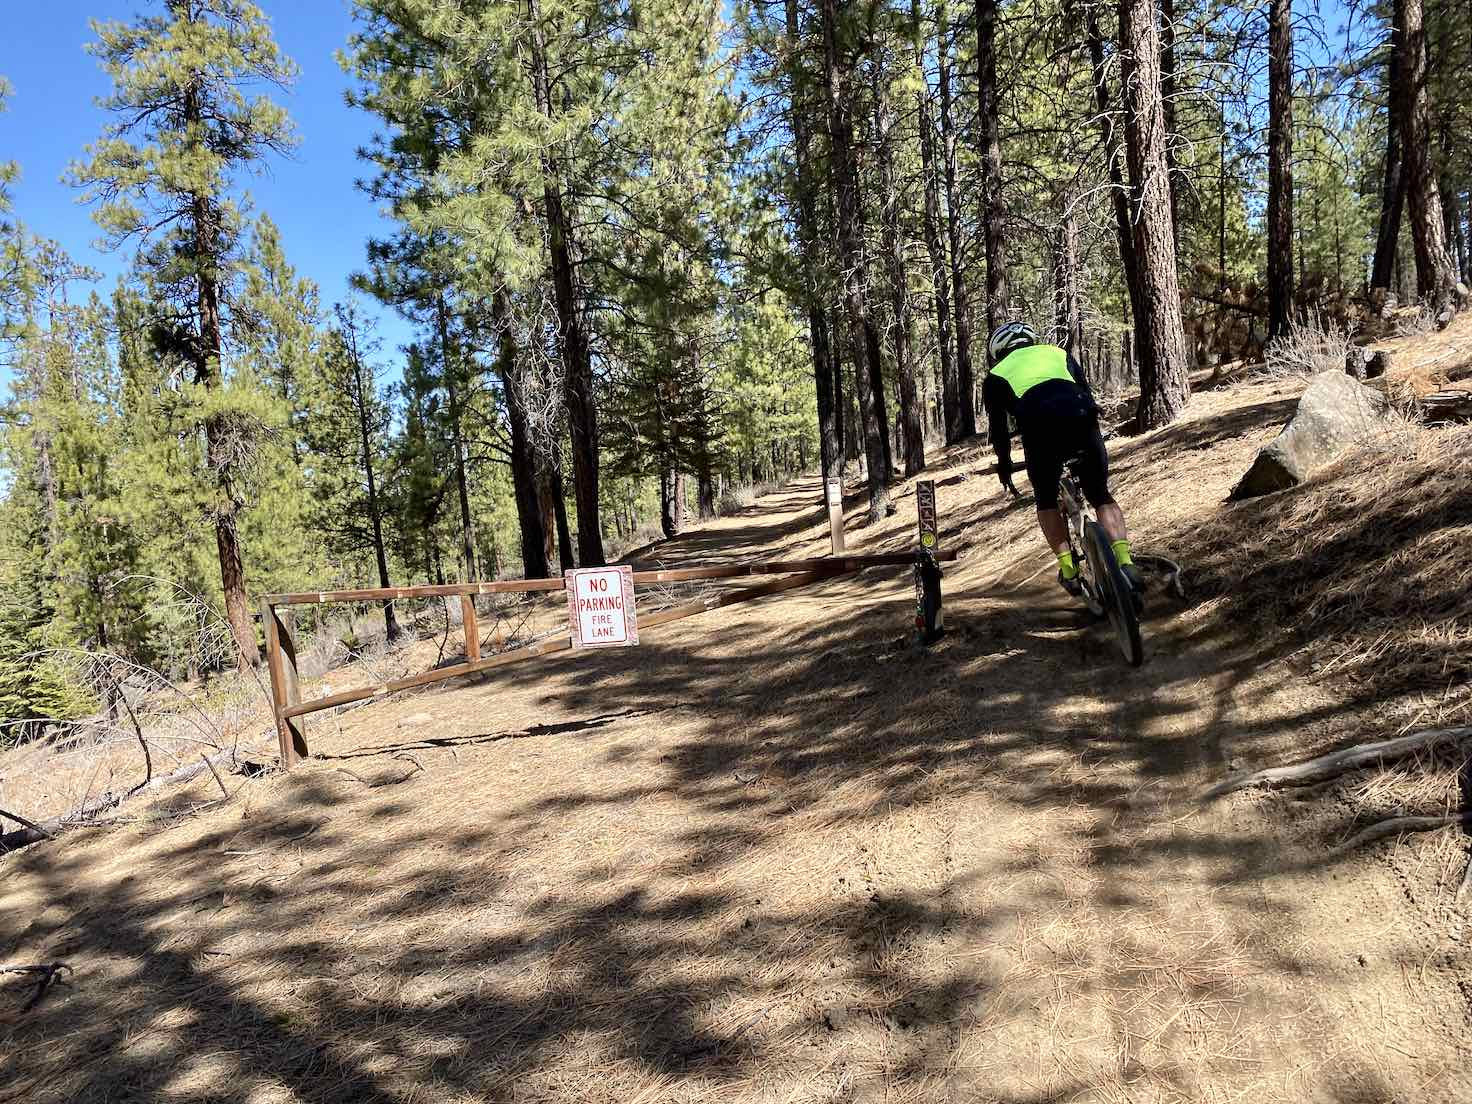 Gravel cyclists on the Western Larch trail in Shevlin park. Double-track.